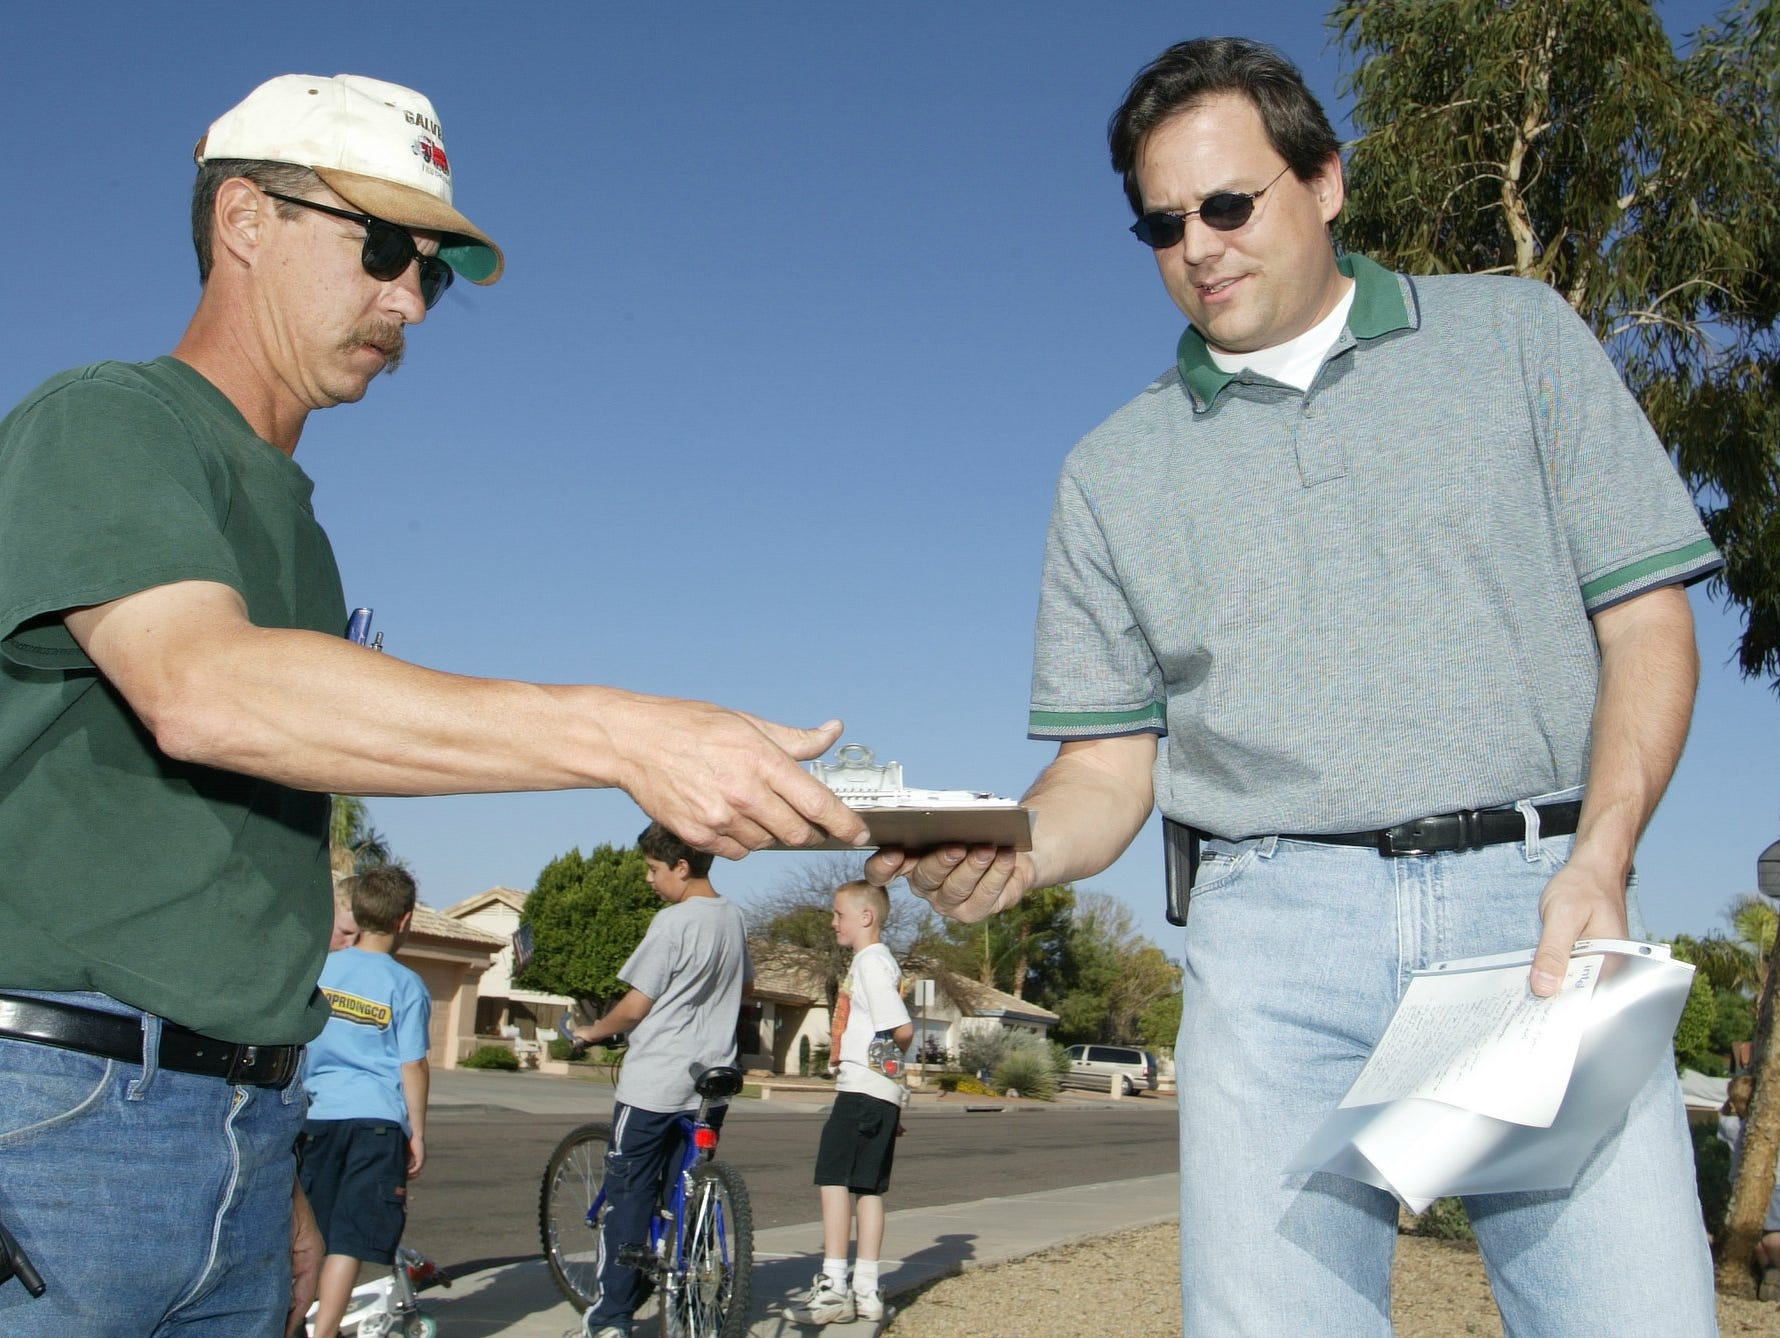 John West, left, hands a signed petition back to Greg Dutton, one of the organizers for a petition regarding go-ped use in Chandler in this 2003 file photo.